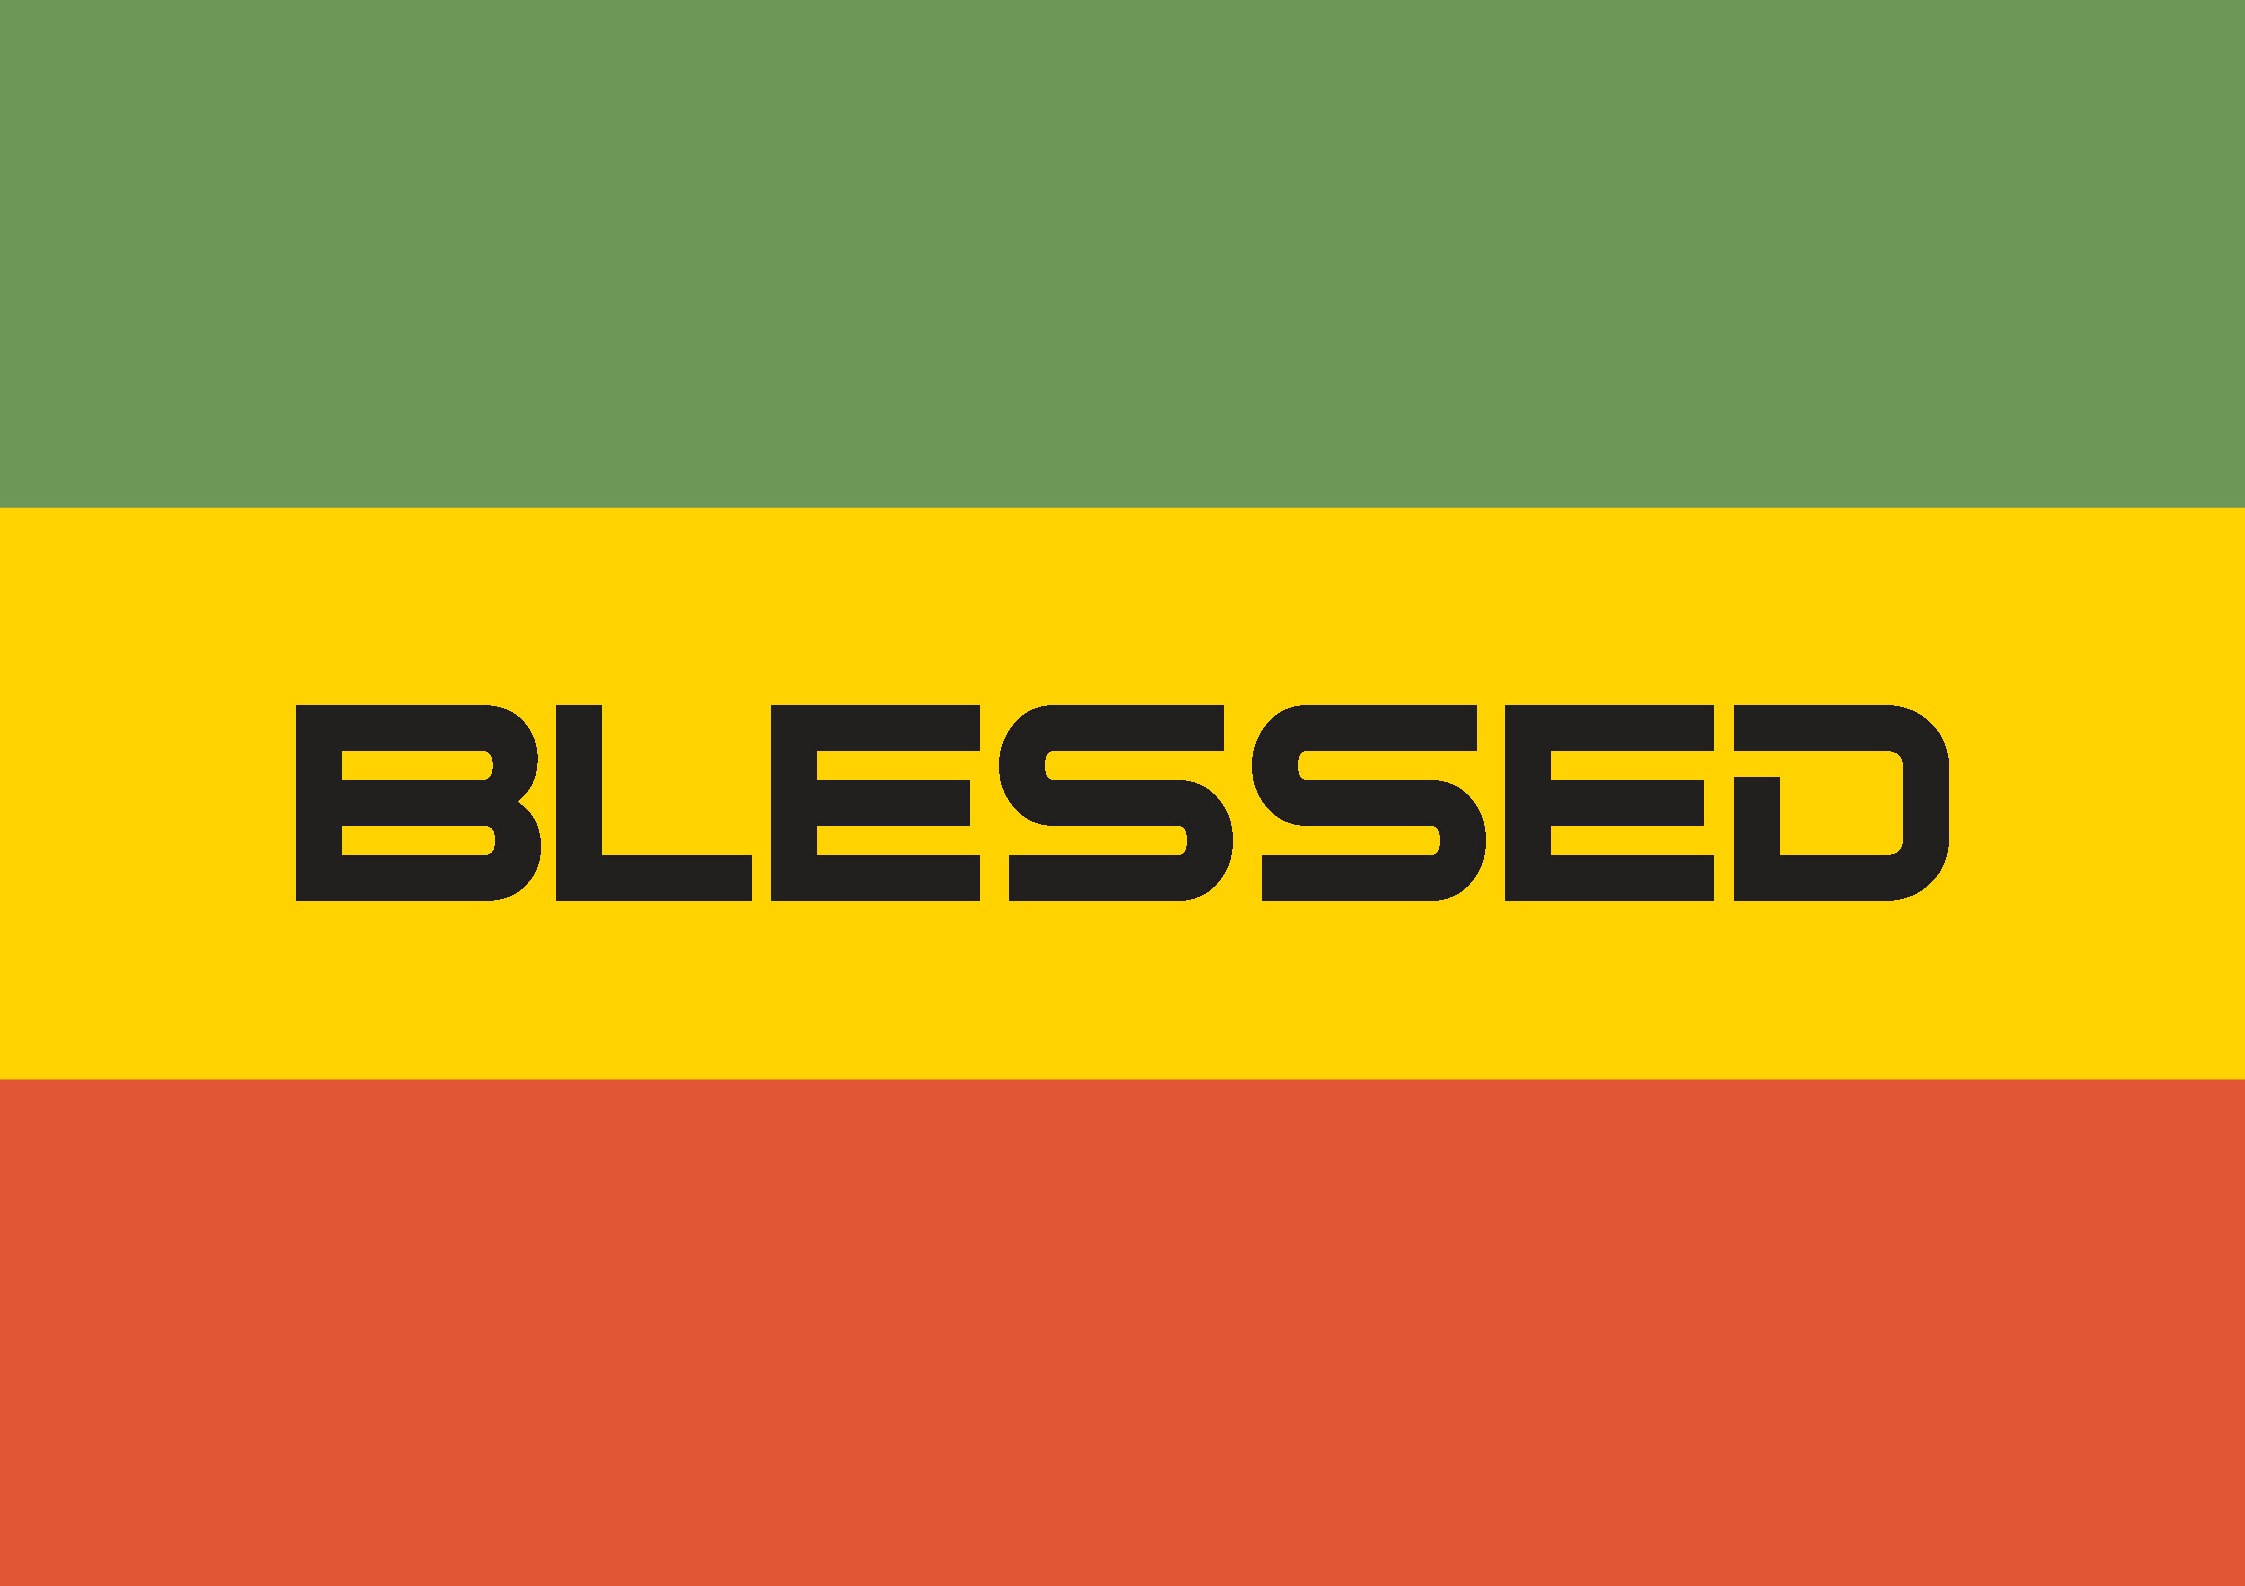 Blessed | The King's English